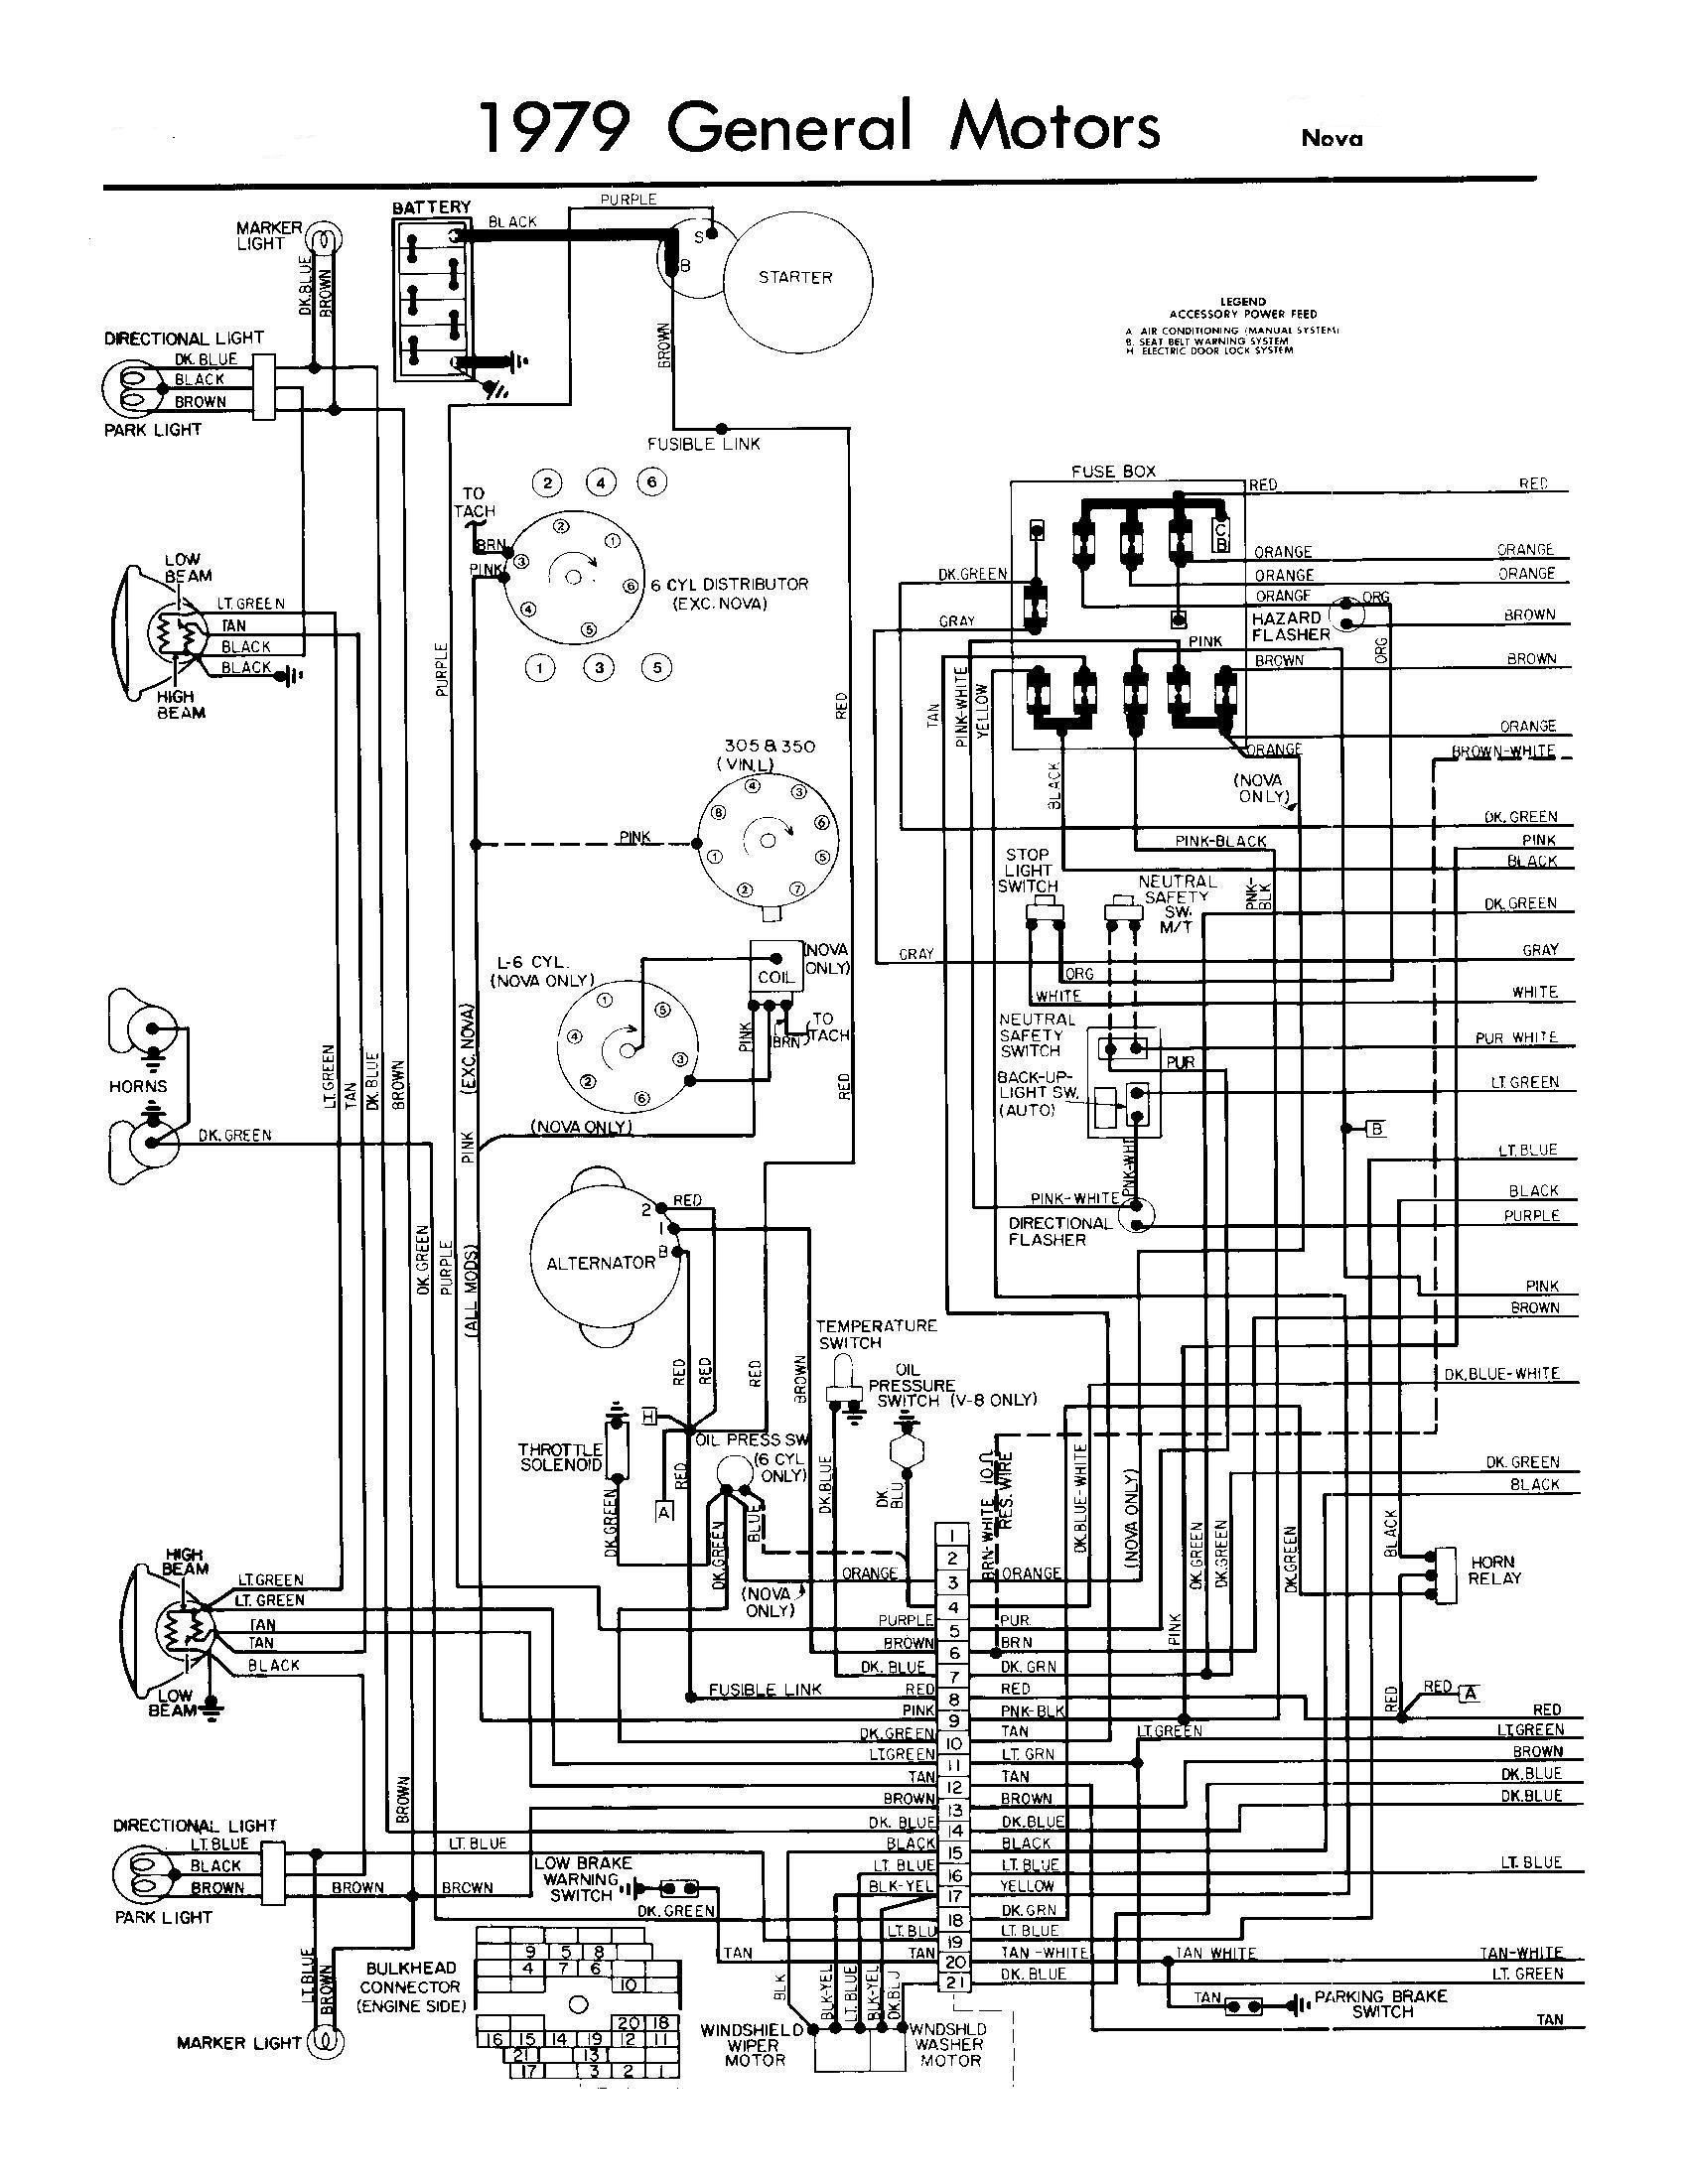 1968 c10 fuse box diagram wiring schematic wiring diagram fuse box u2022 rh friendsoffido co